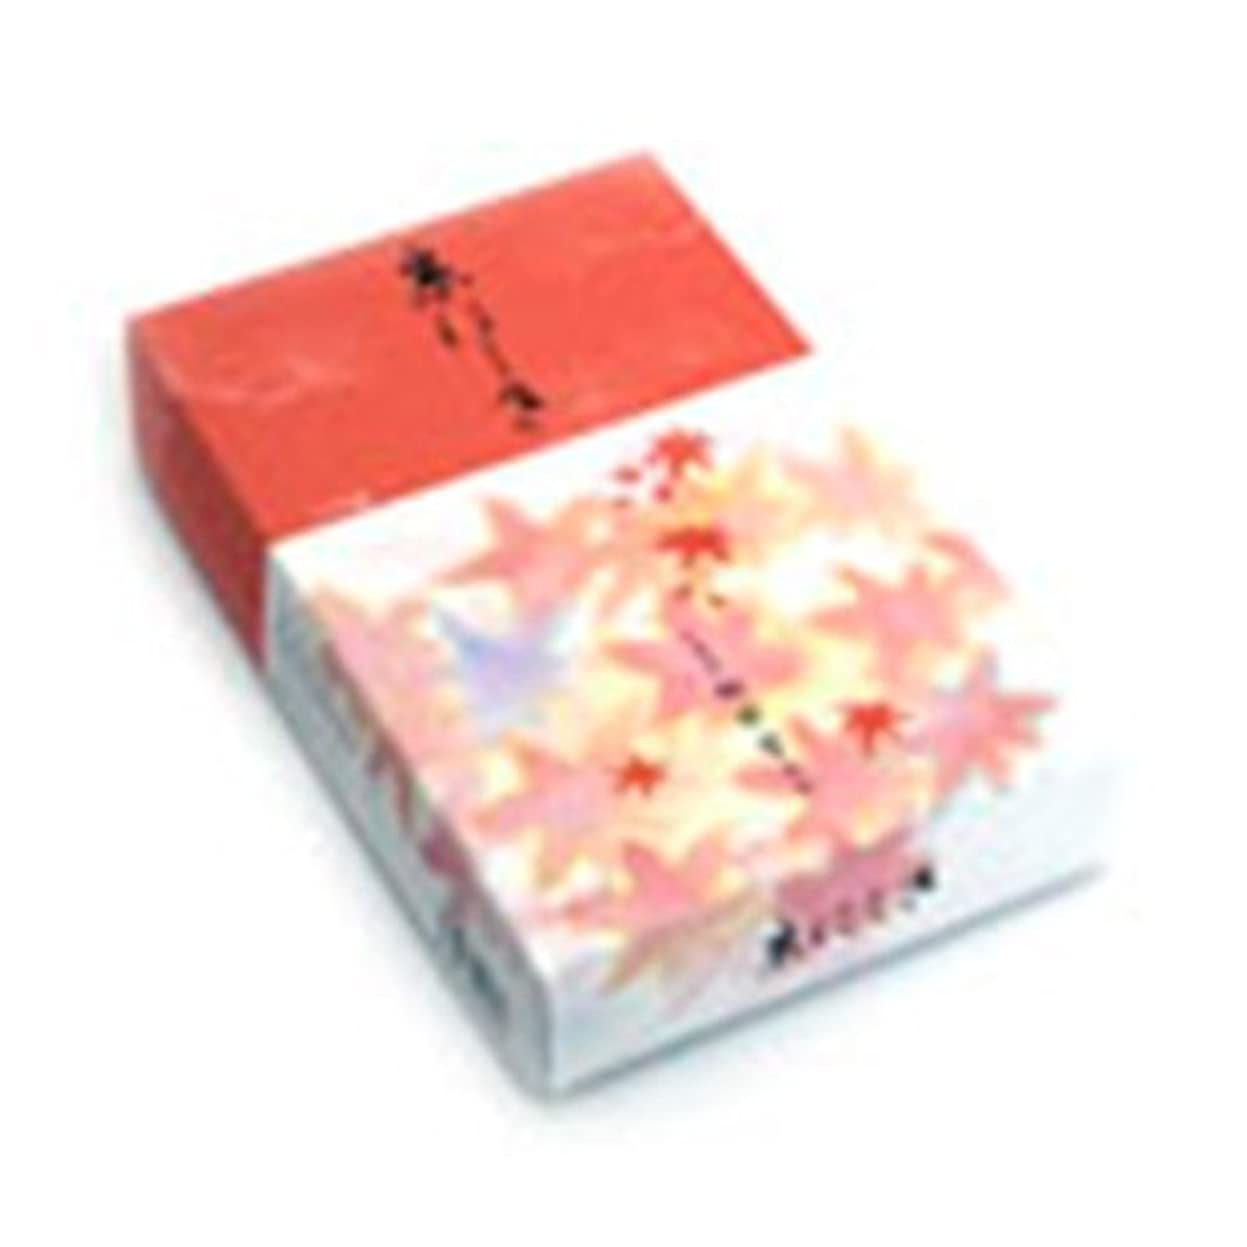 抗生物質揃えるファンネルウェブスパイダーShoyeido's Kyoto Autumn Leaves Incense, 450 Sticks - Kyo-nishiki, New, Free Ship